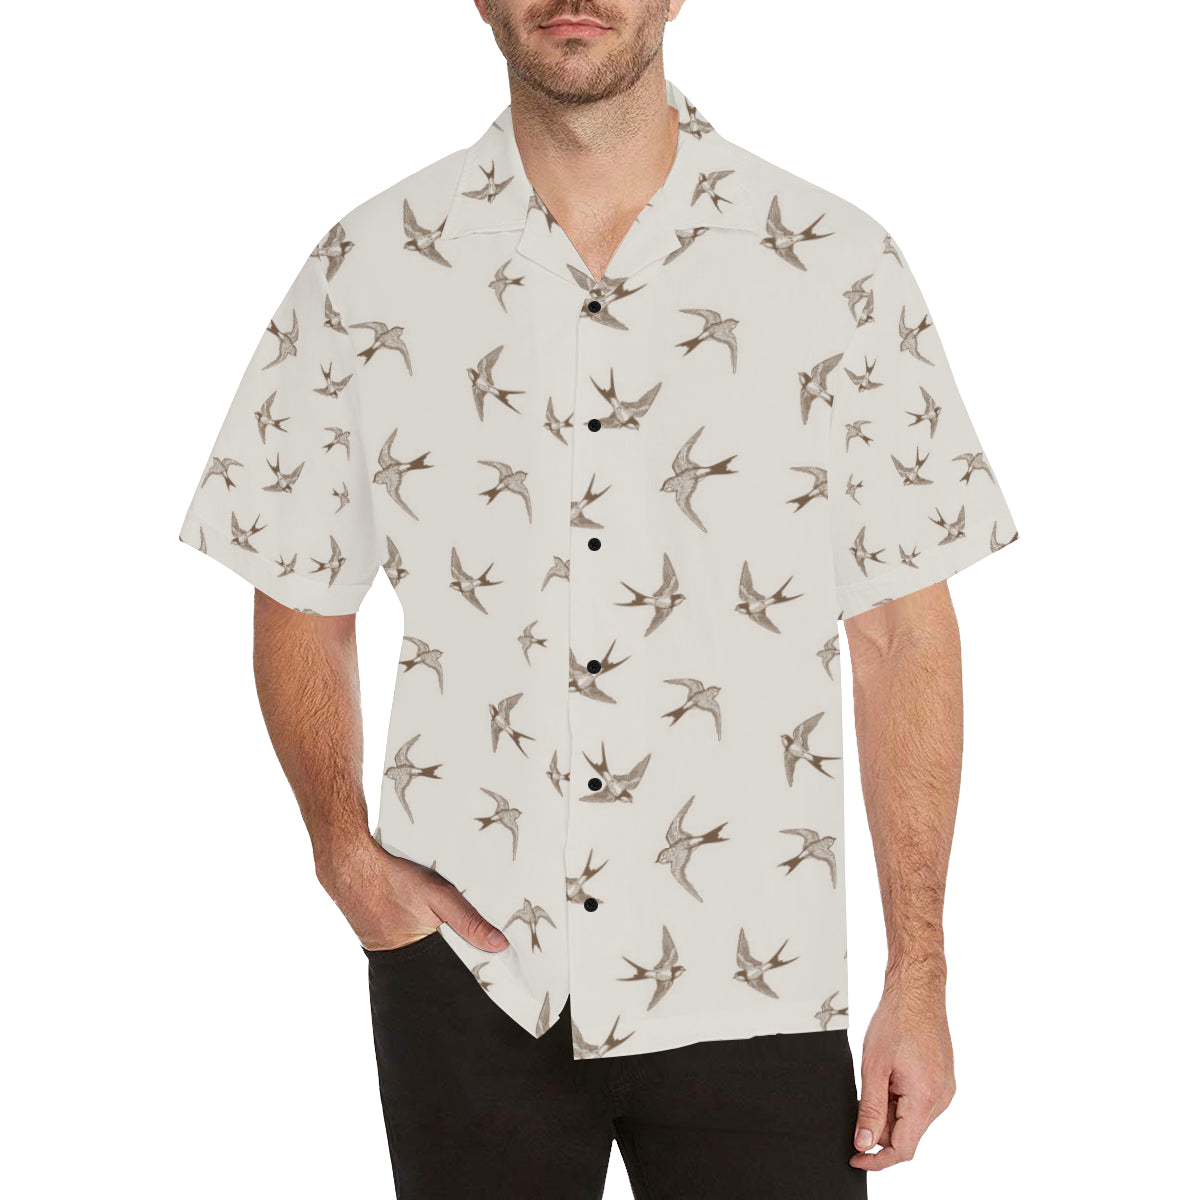 Swallow Bird Pattern Print Design 01 Hawaiian Shirt